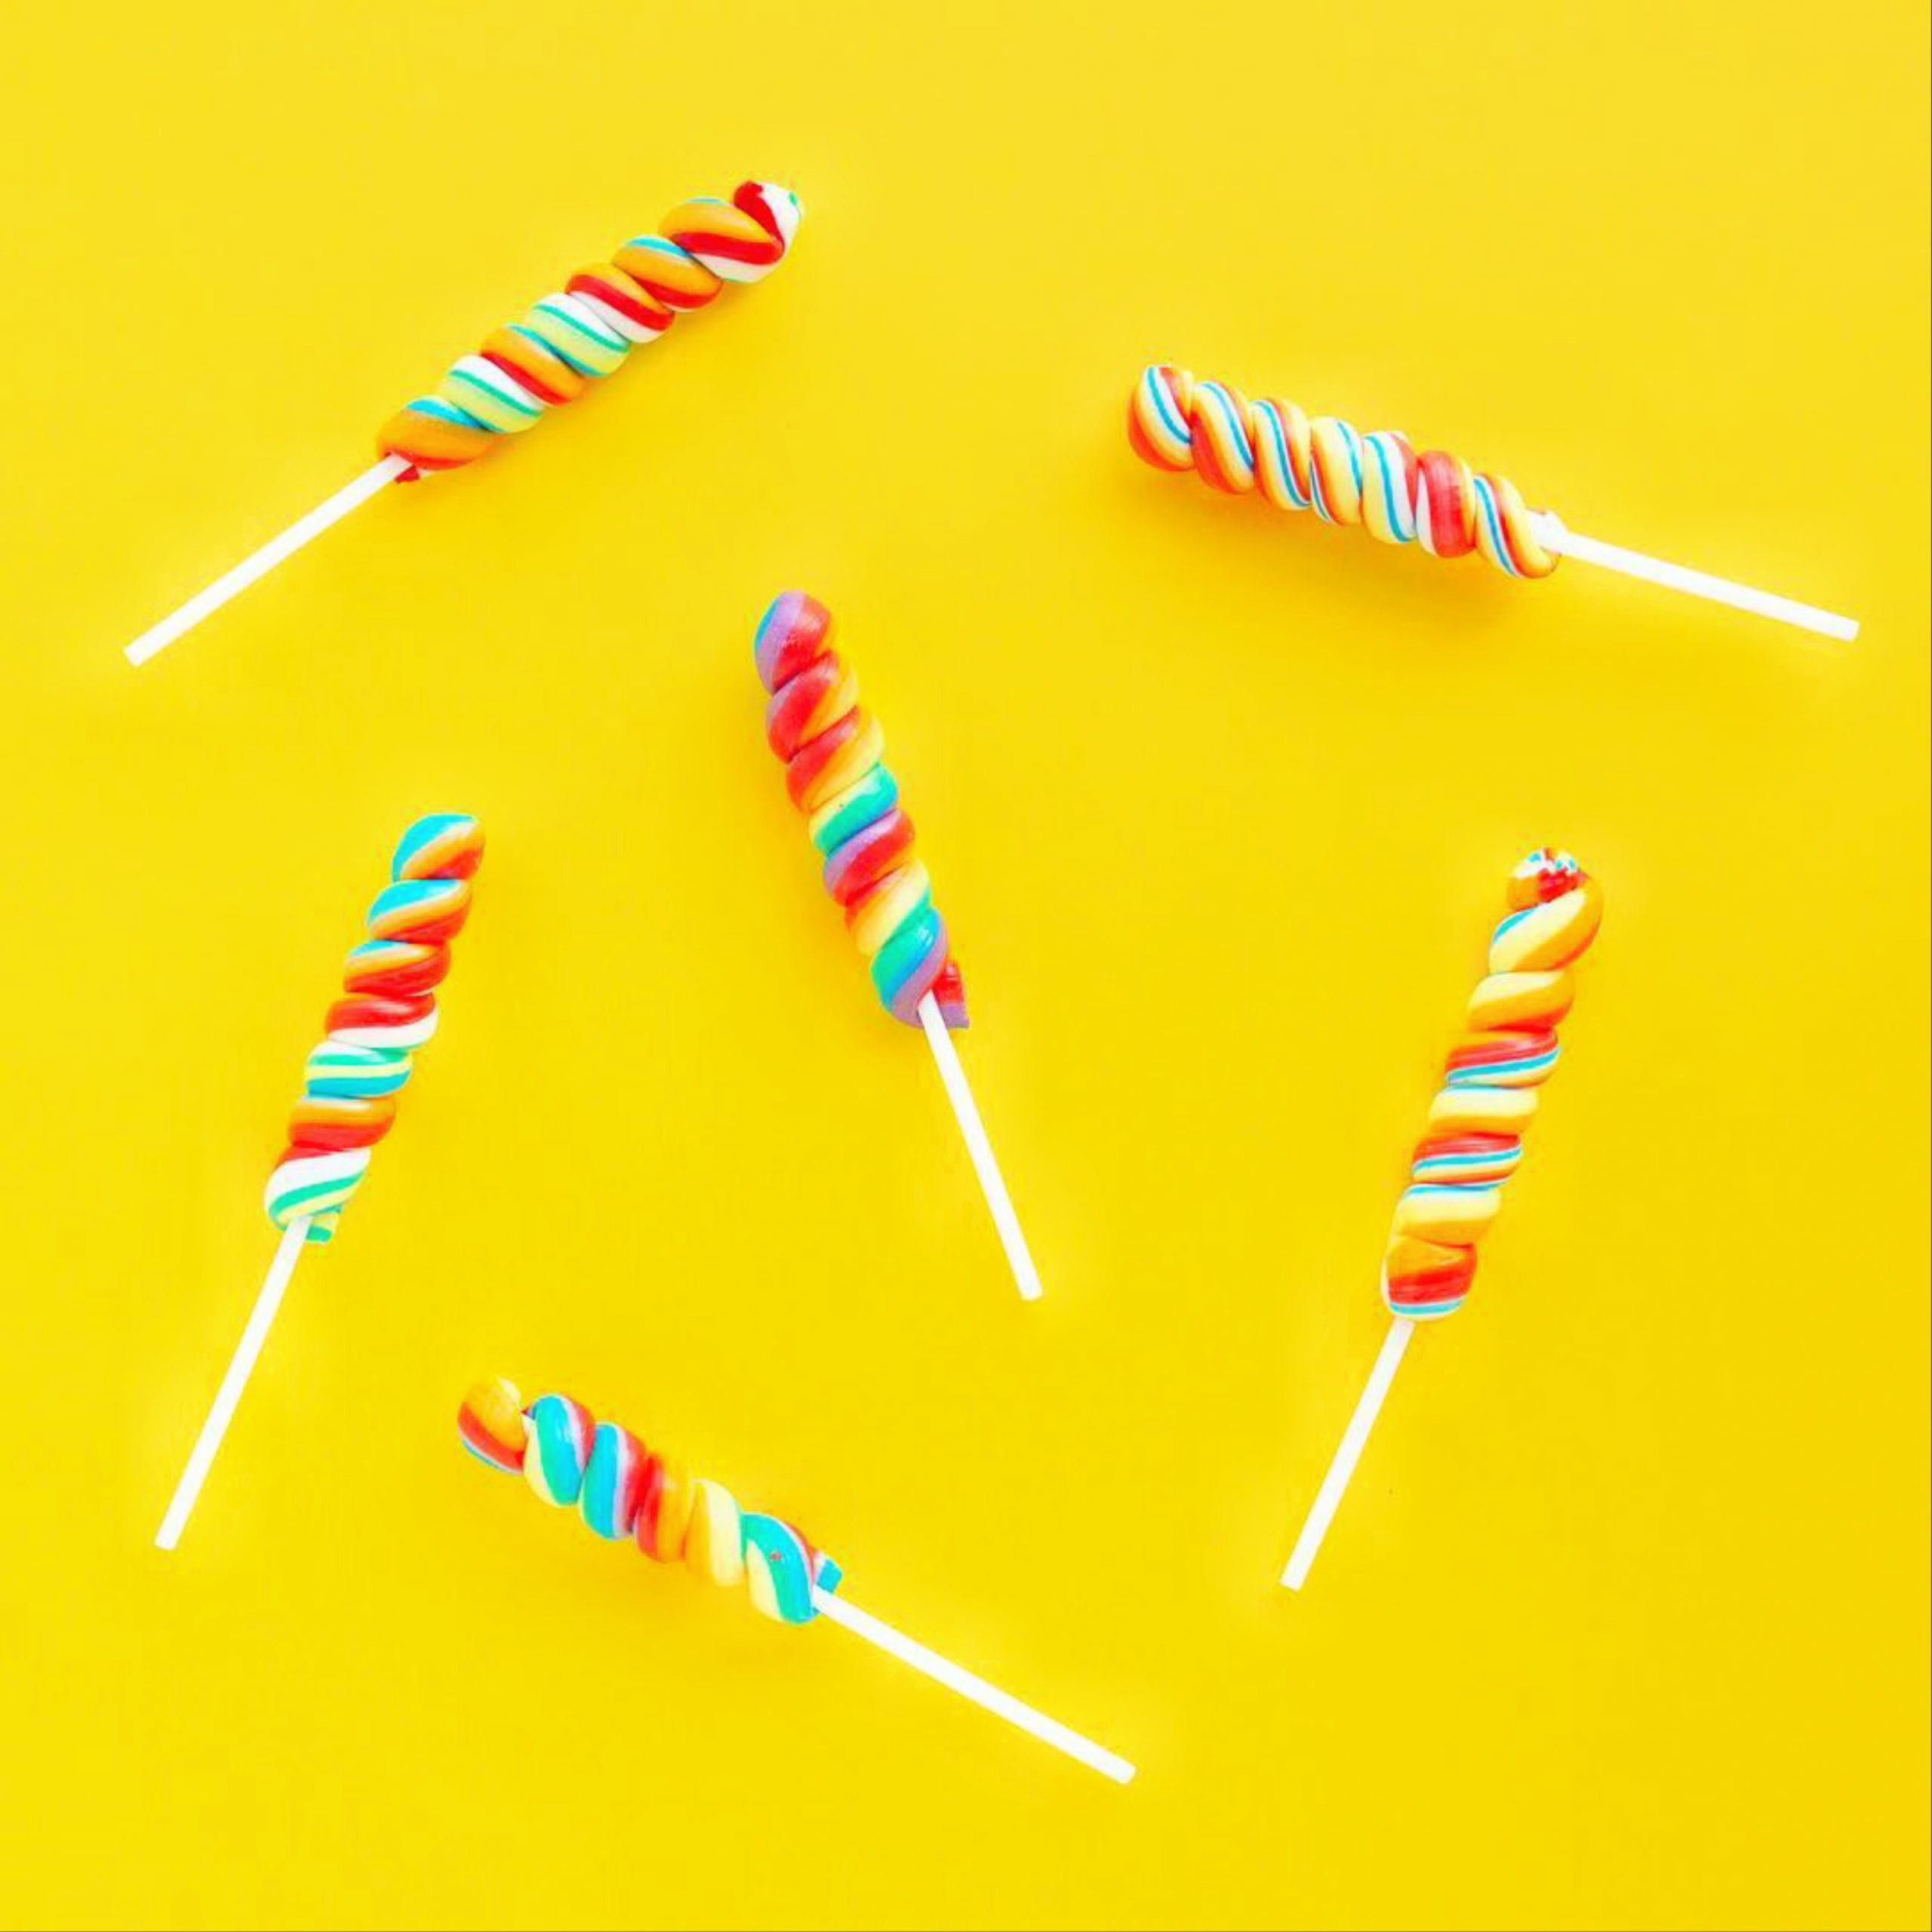 Stick candies